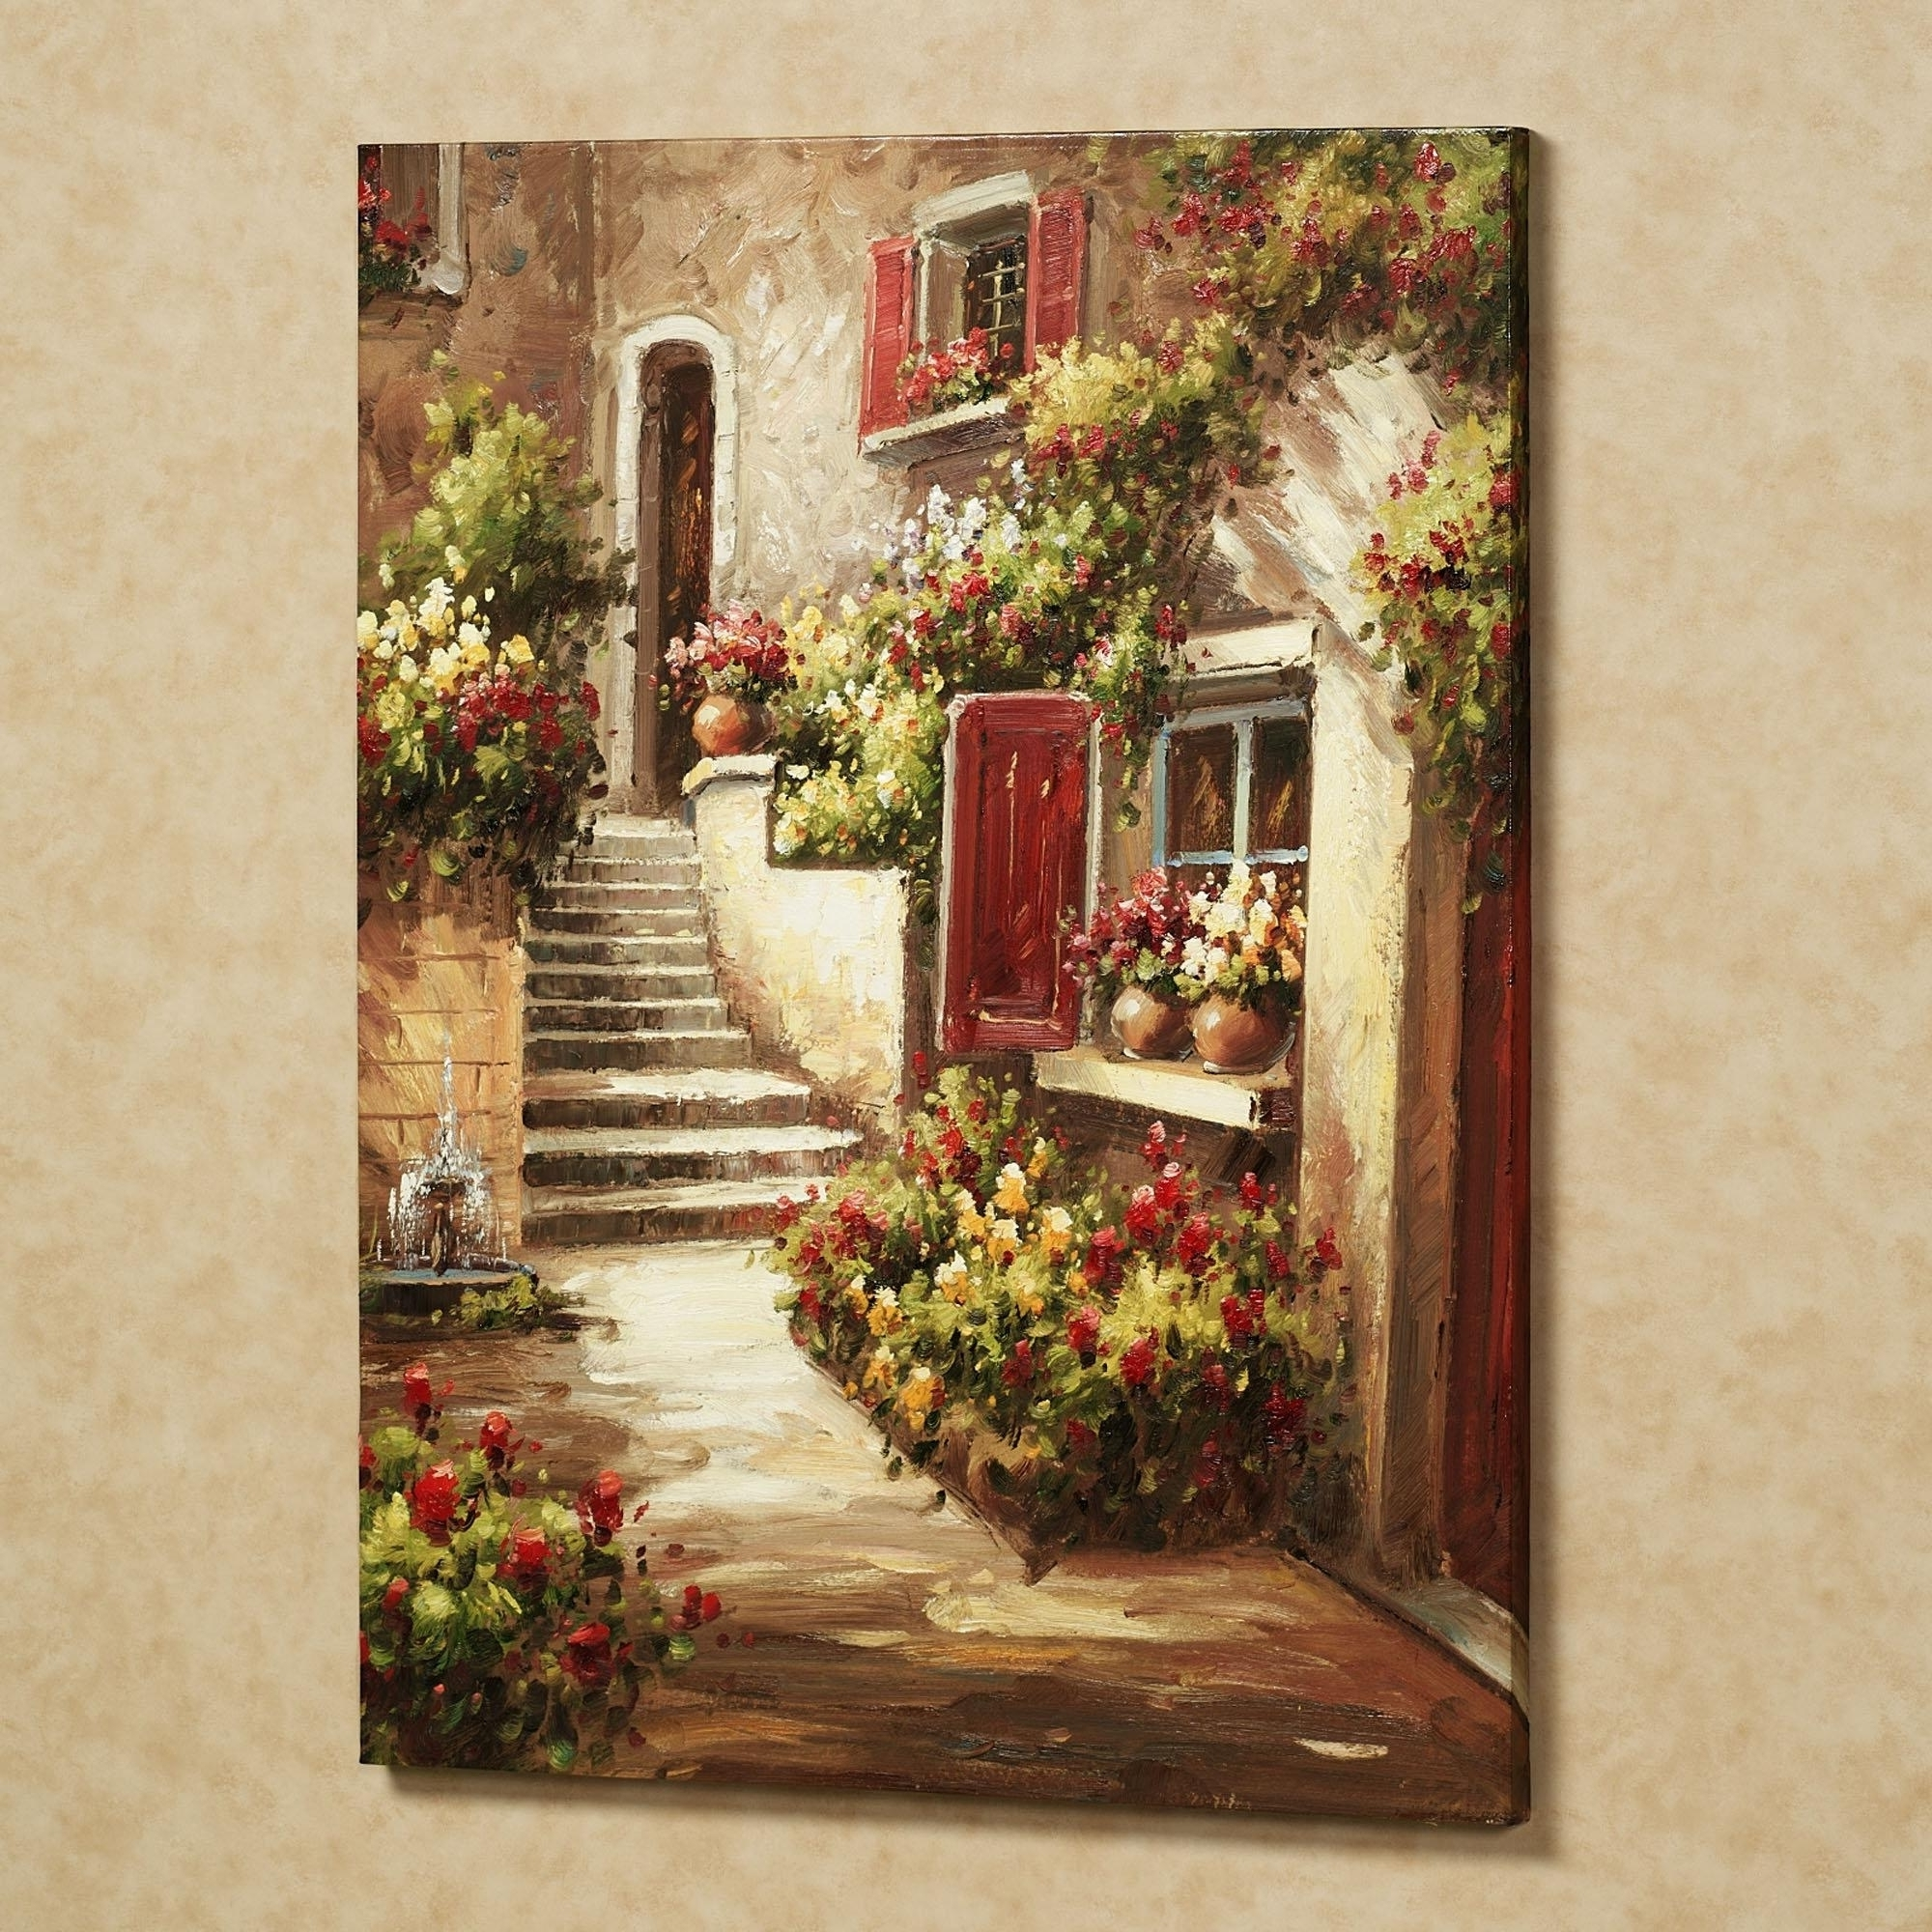 Most Popular Traditional Wall Art In 17 Traditional Wall Art Home Design Arts Decor Crecaranking (View 2 of 15)